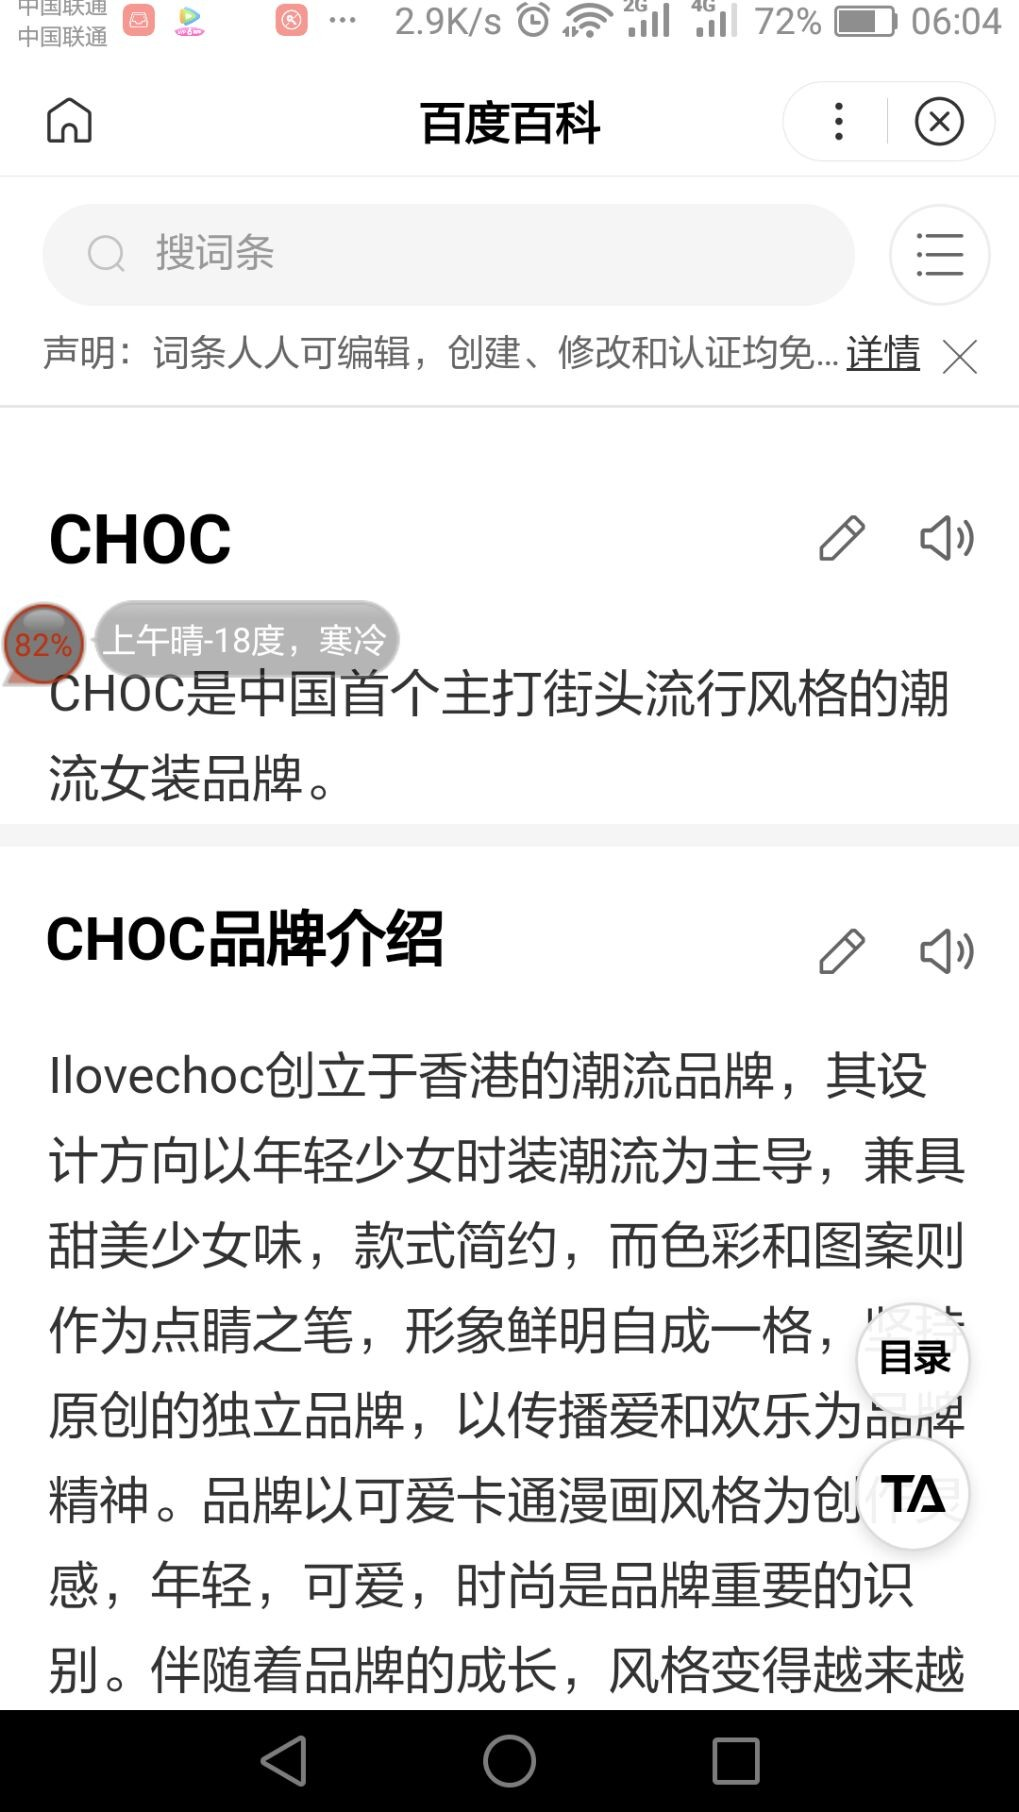 Friend sent this back from a Chinese search CHOC ilovechoc